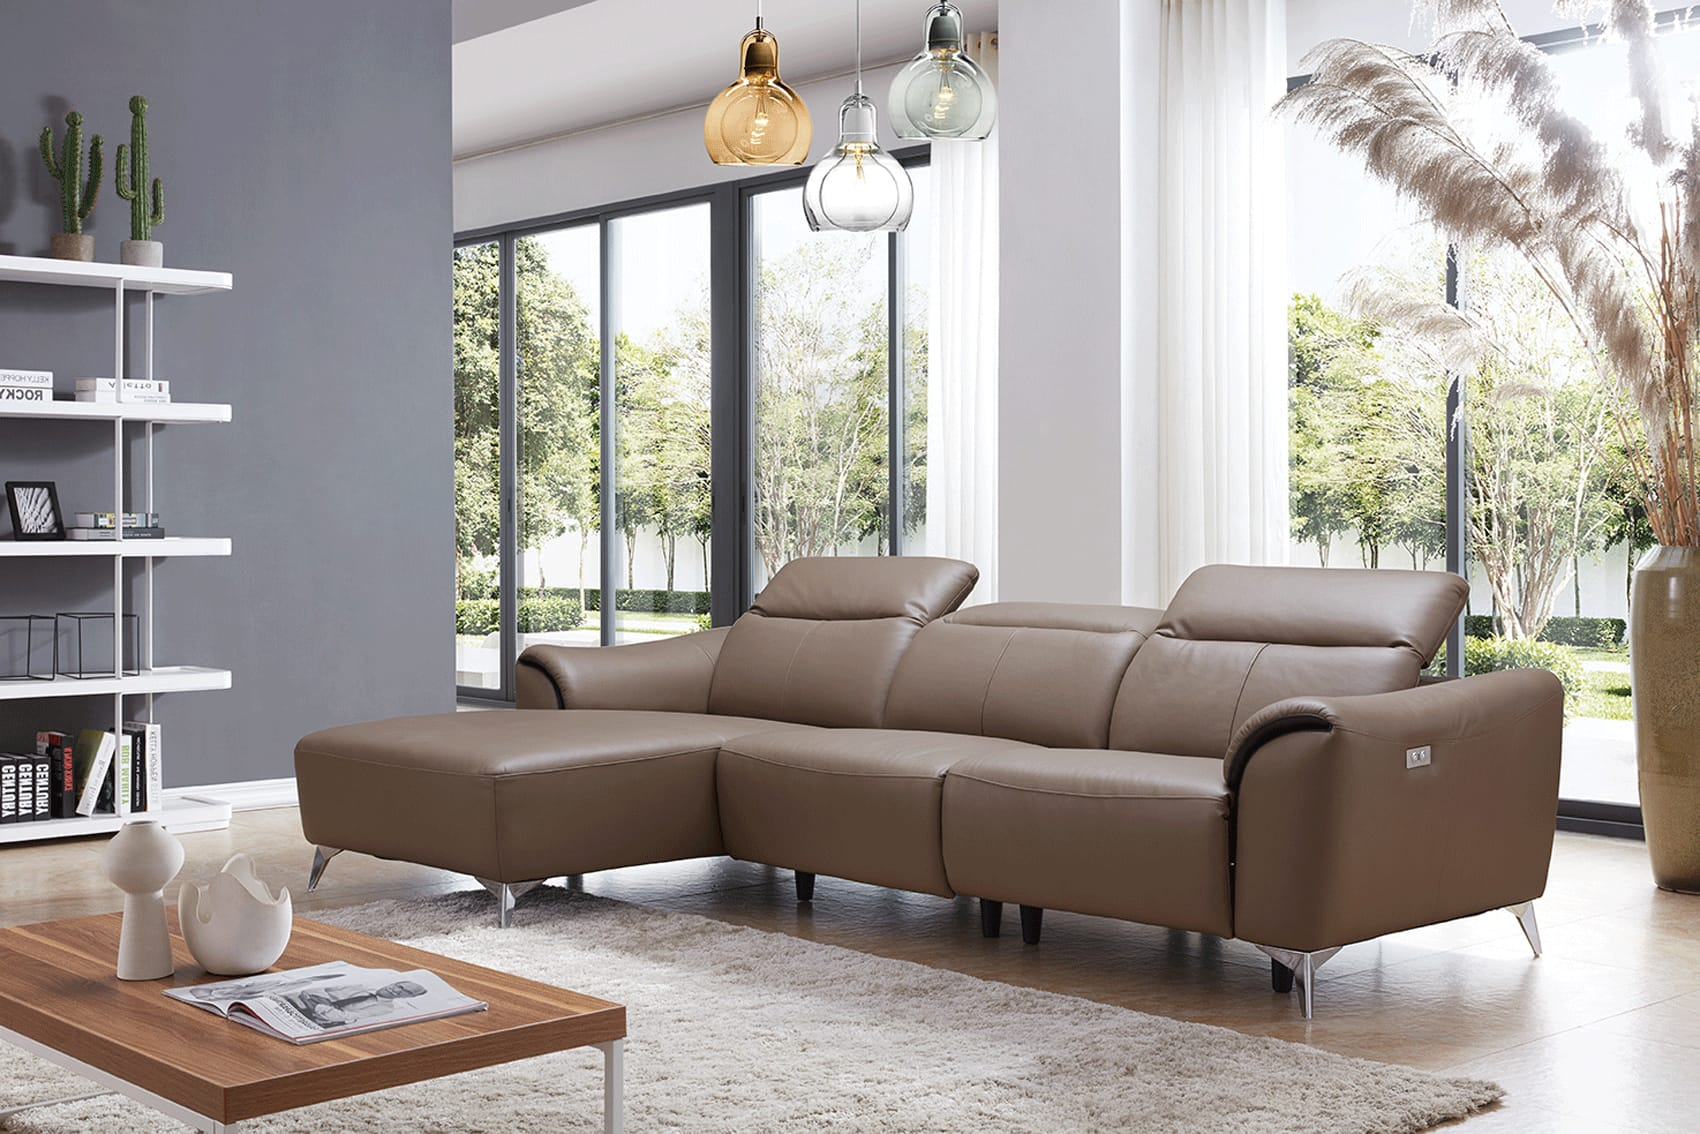 950 brown leather sectional by esf